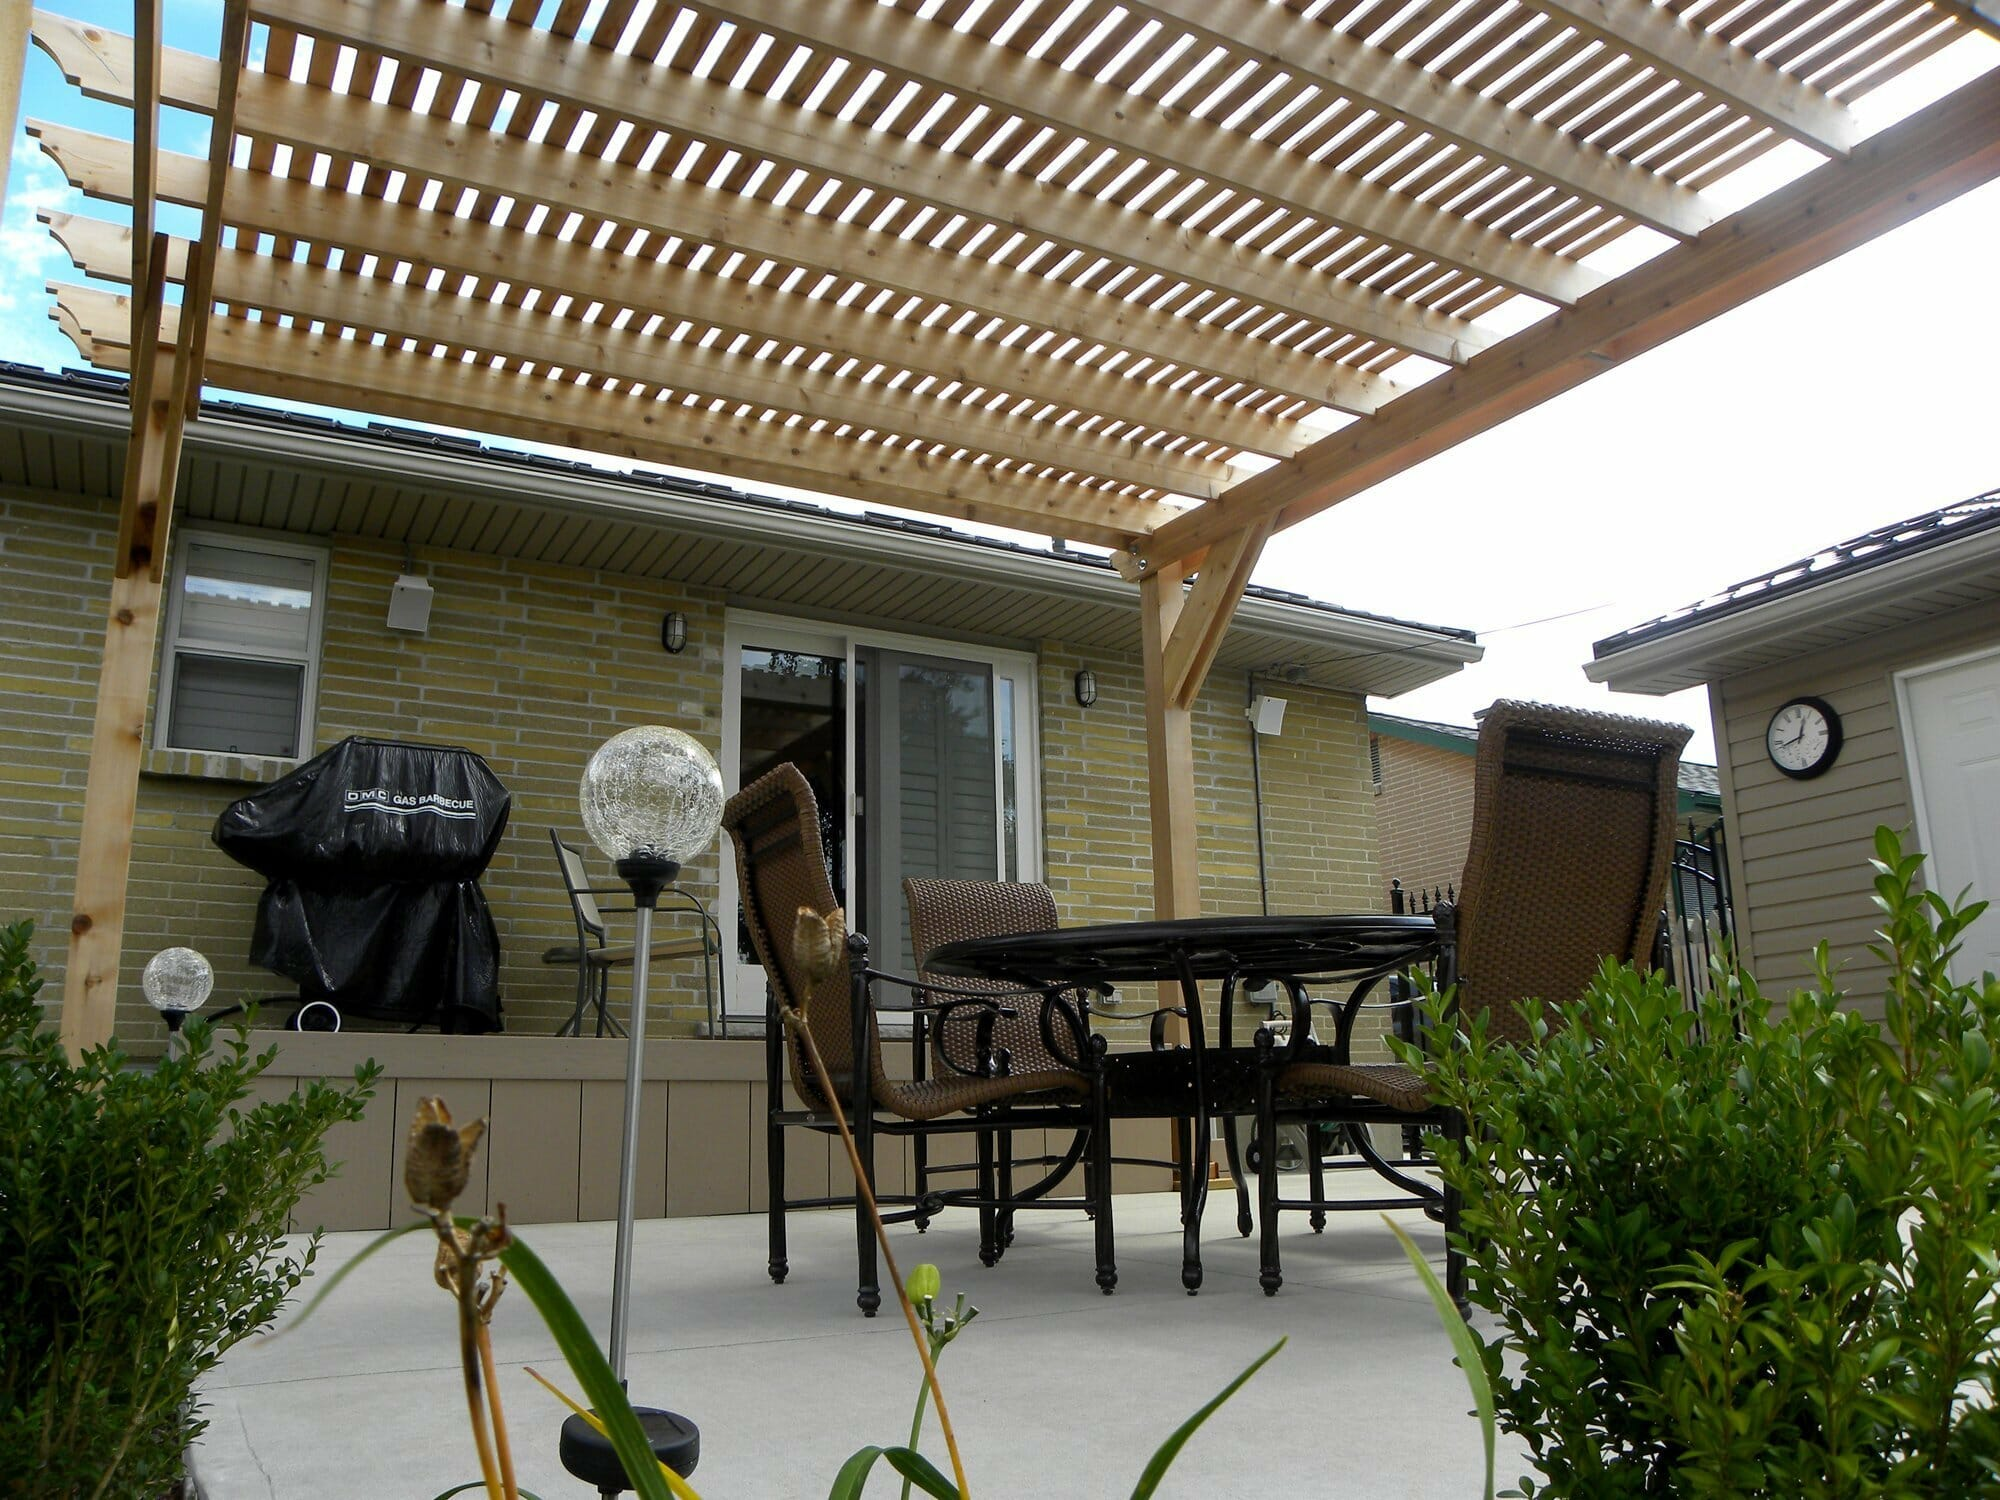 Backyard Woodworking Pergola - London, Ontario Landscaping & Custom Landscape Design